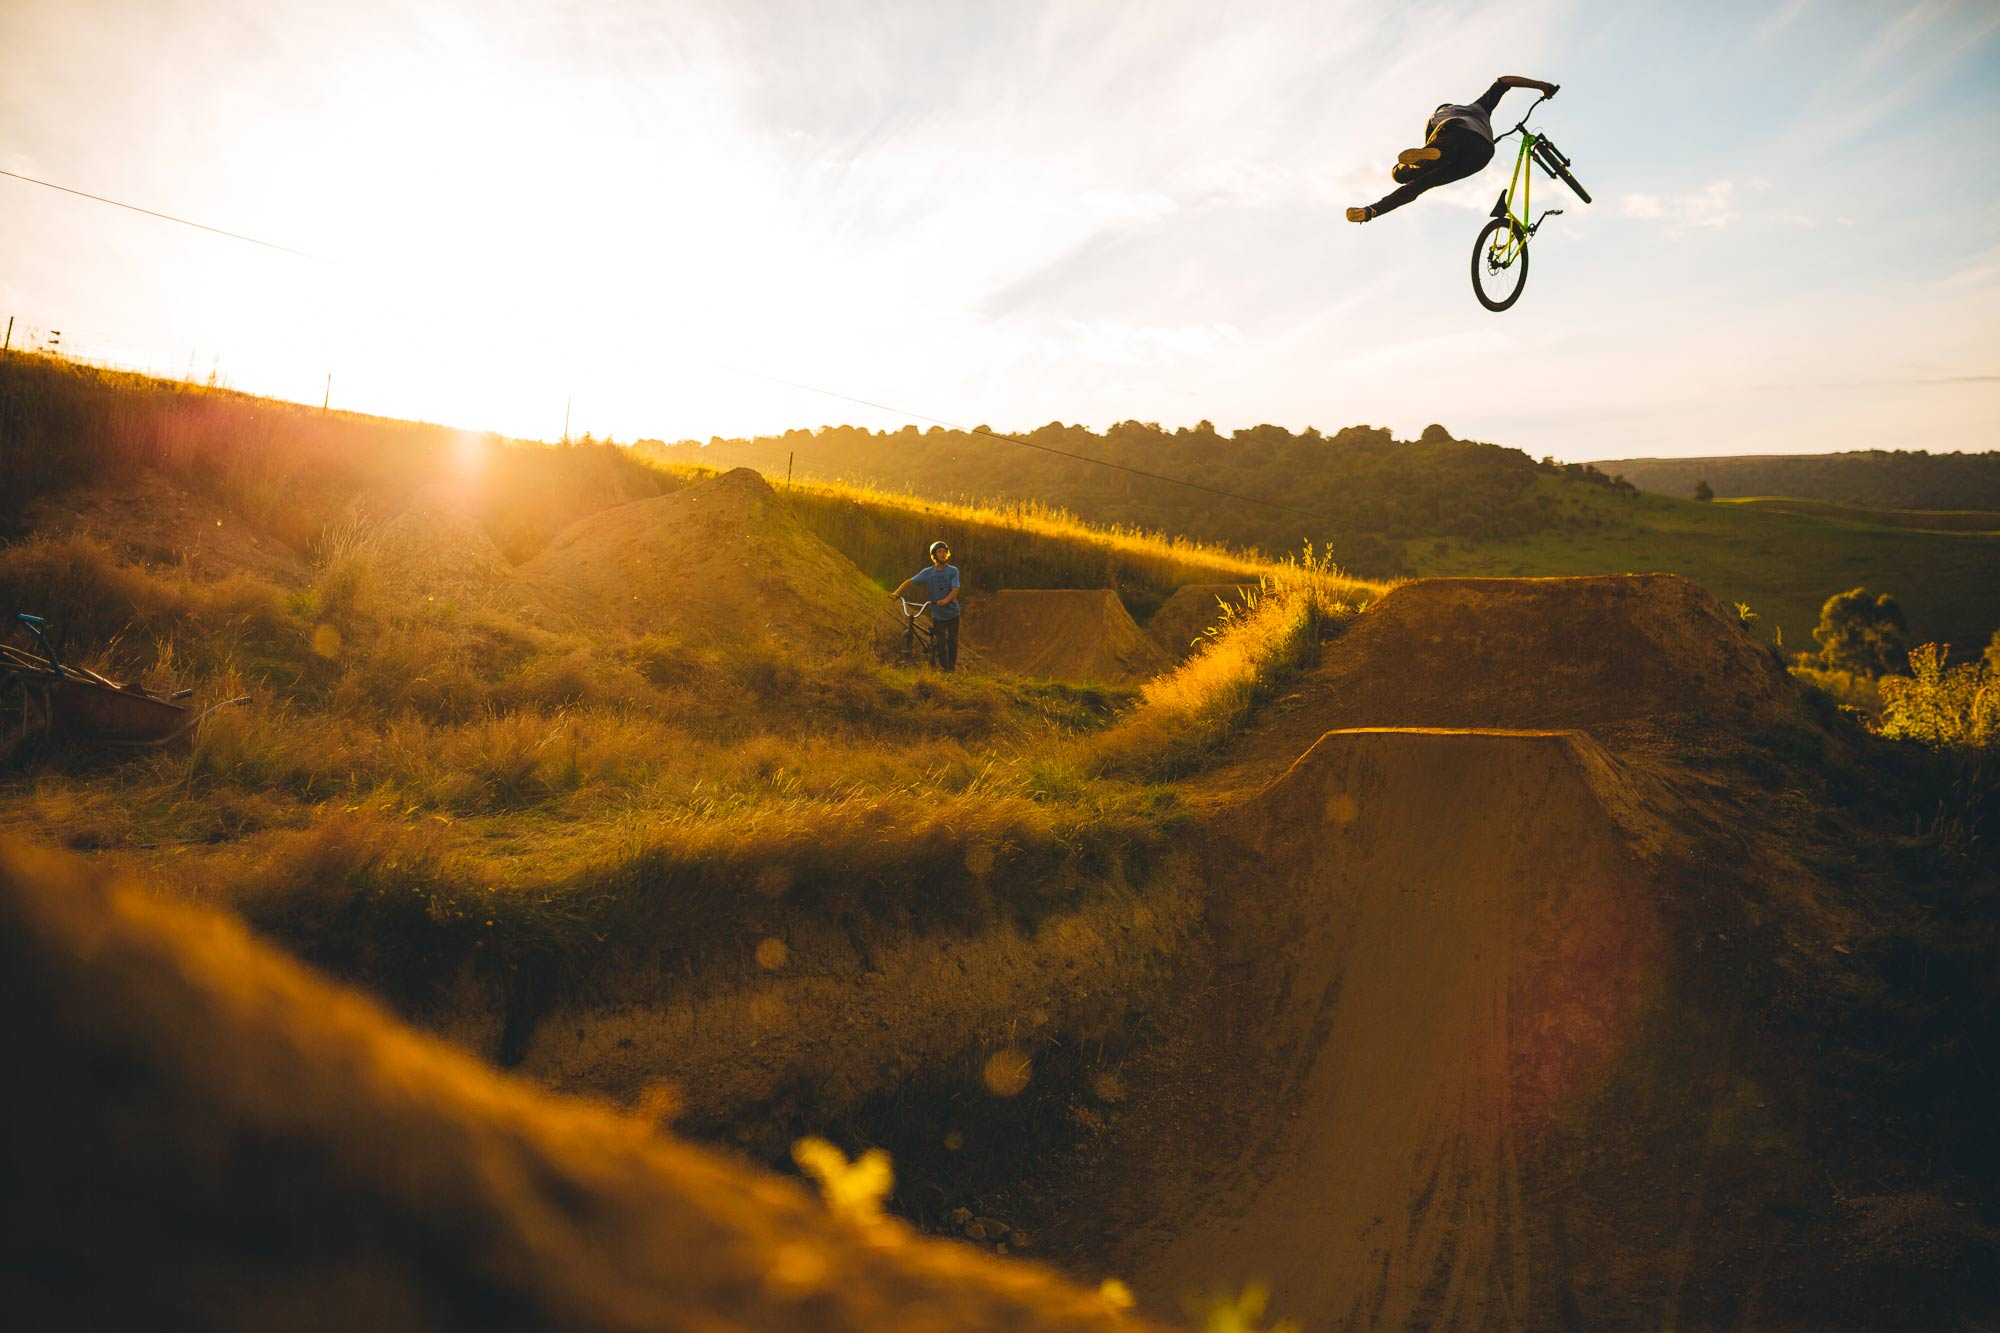 Mountain Bike rider Nick Dethridge jumping at Frew Farm at Sunset